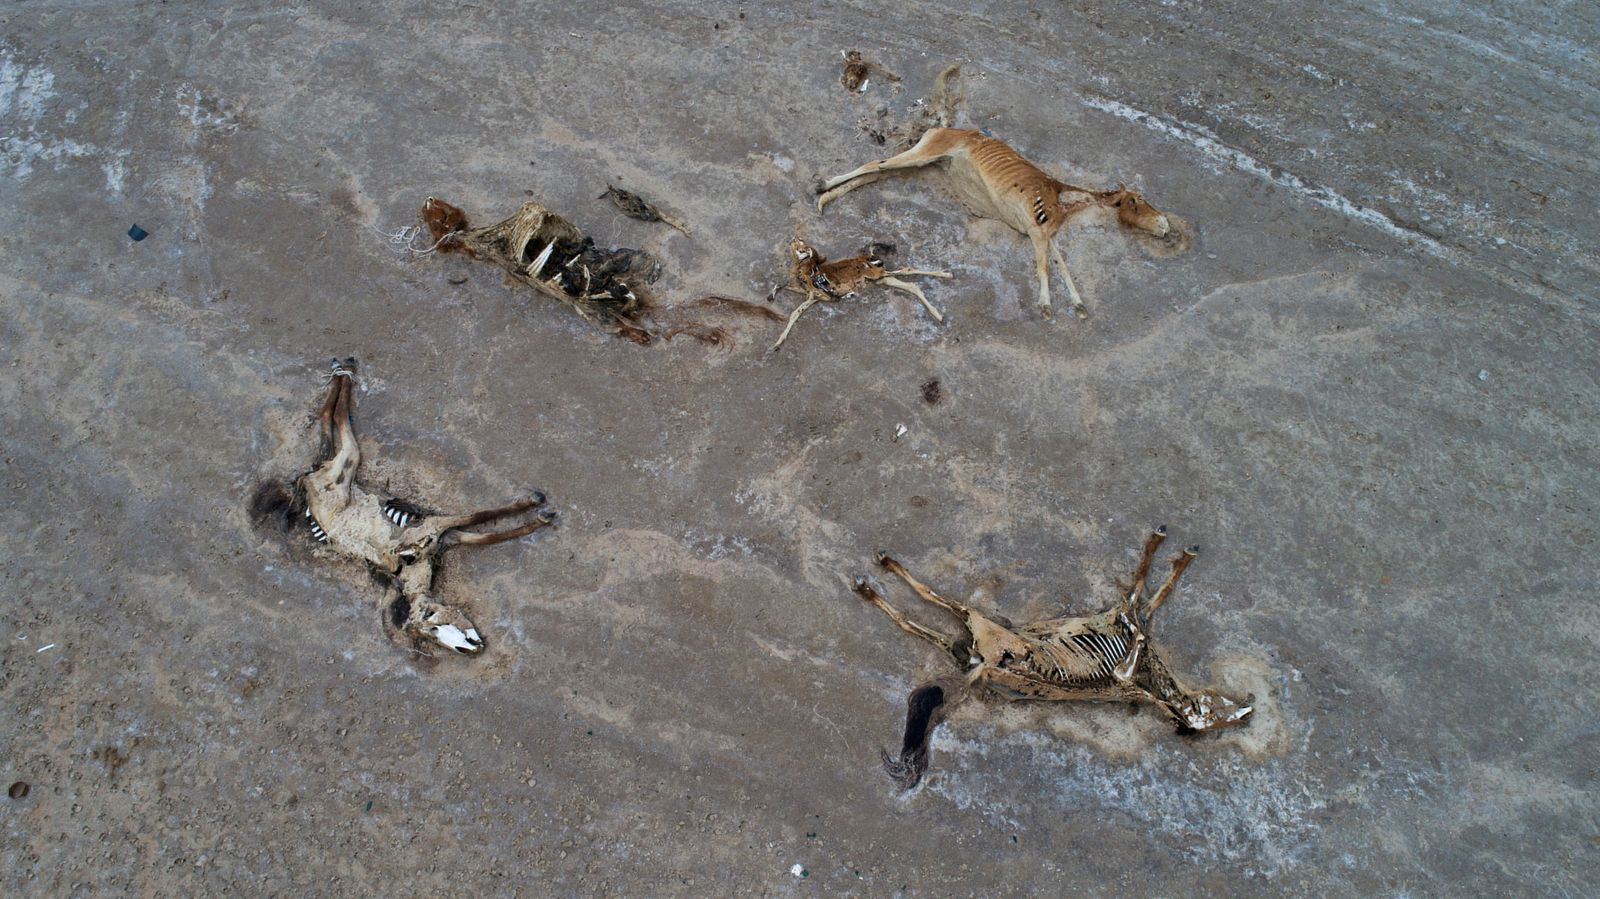 Severe drought causing livestock starvation affects herders in Kazakh province